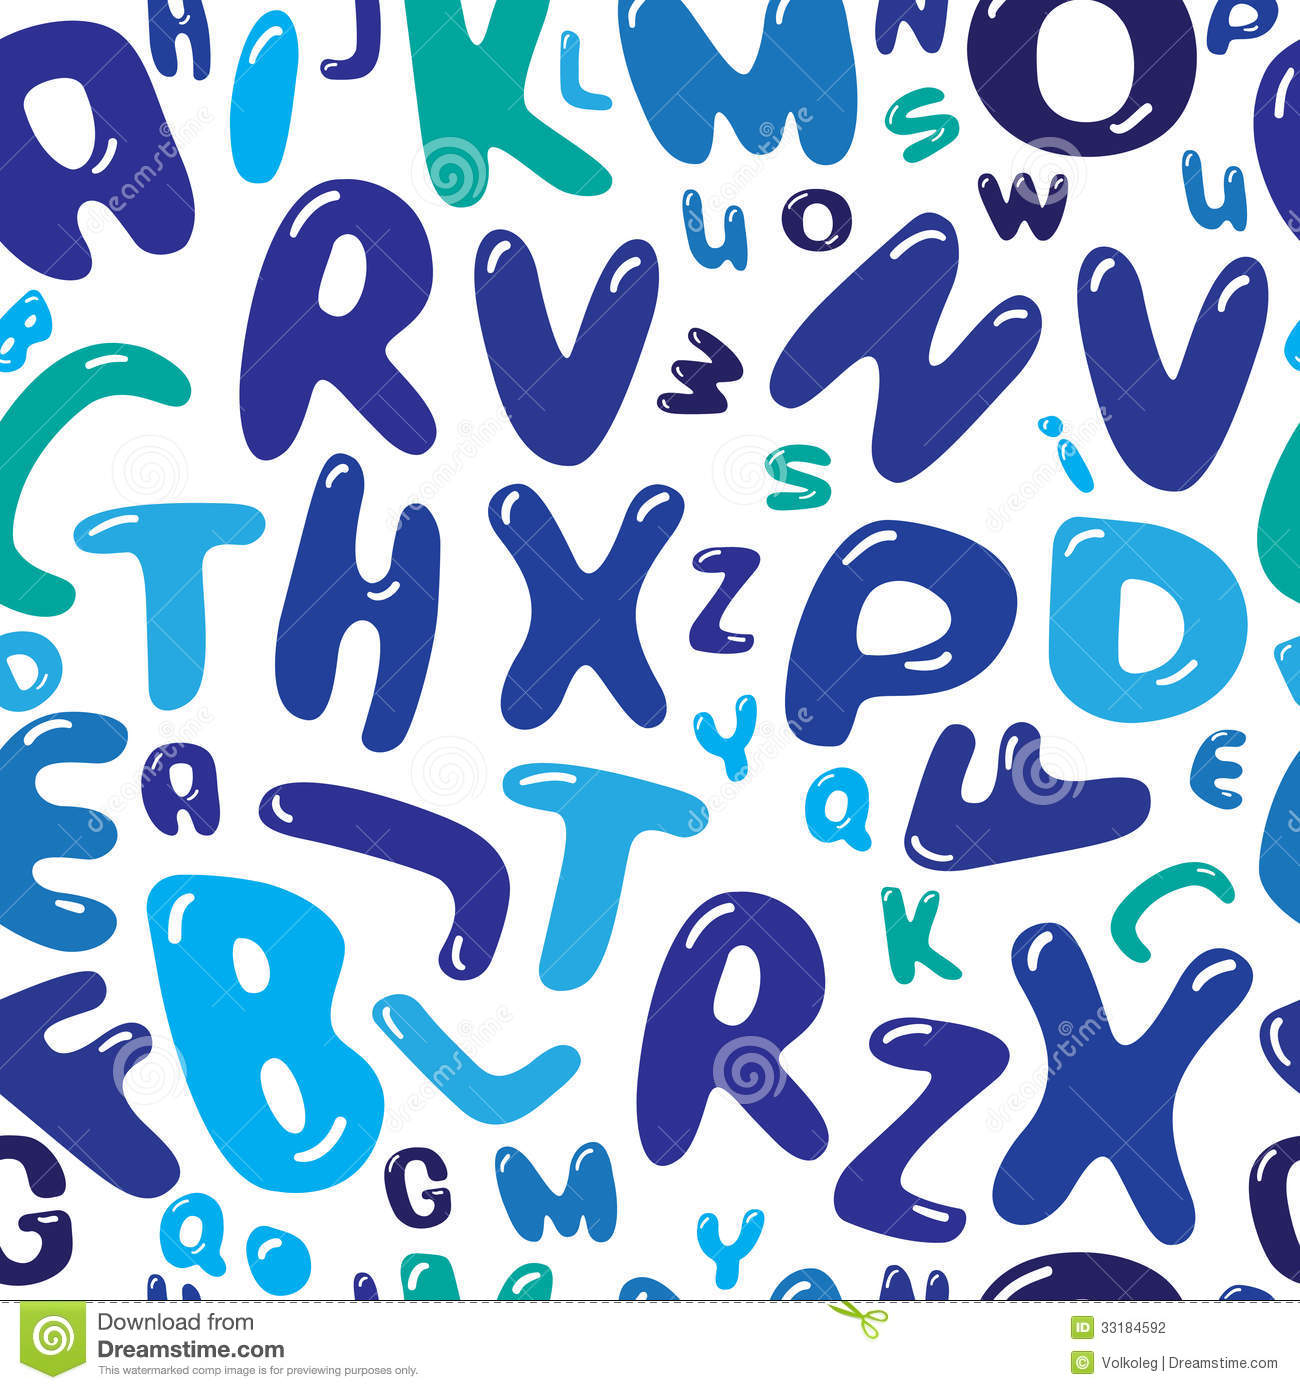 Bubble Letters Illustration Seamless Vector Patter Stock